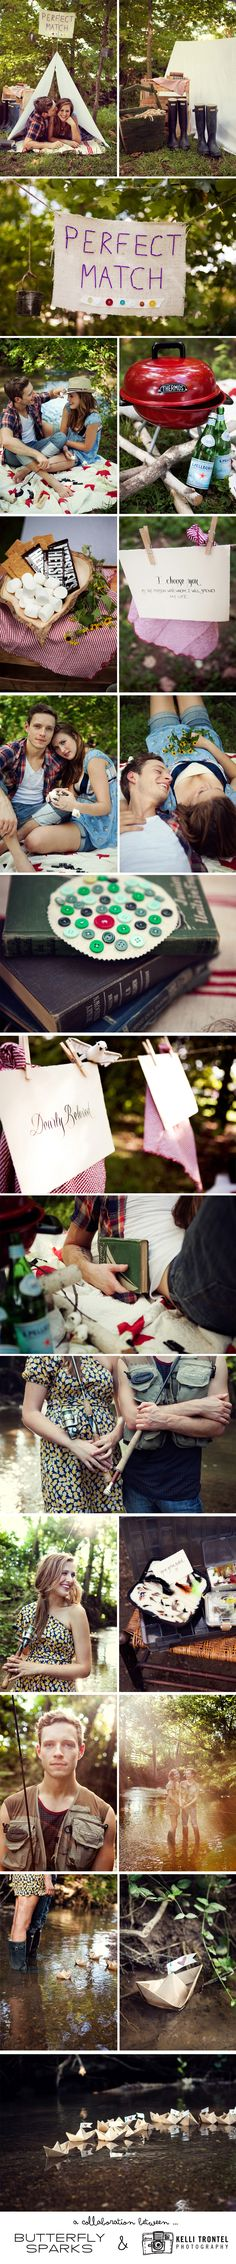 Lovely camping themed e-session.